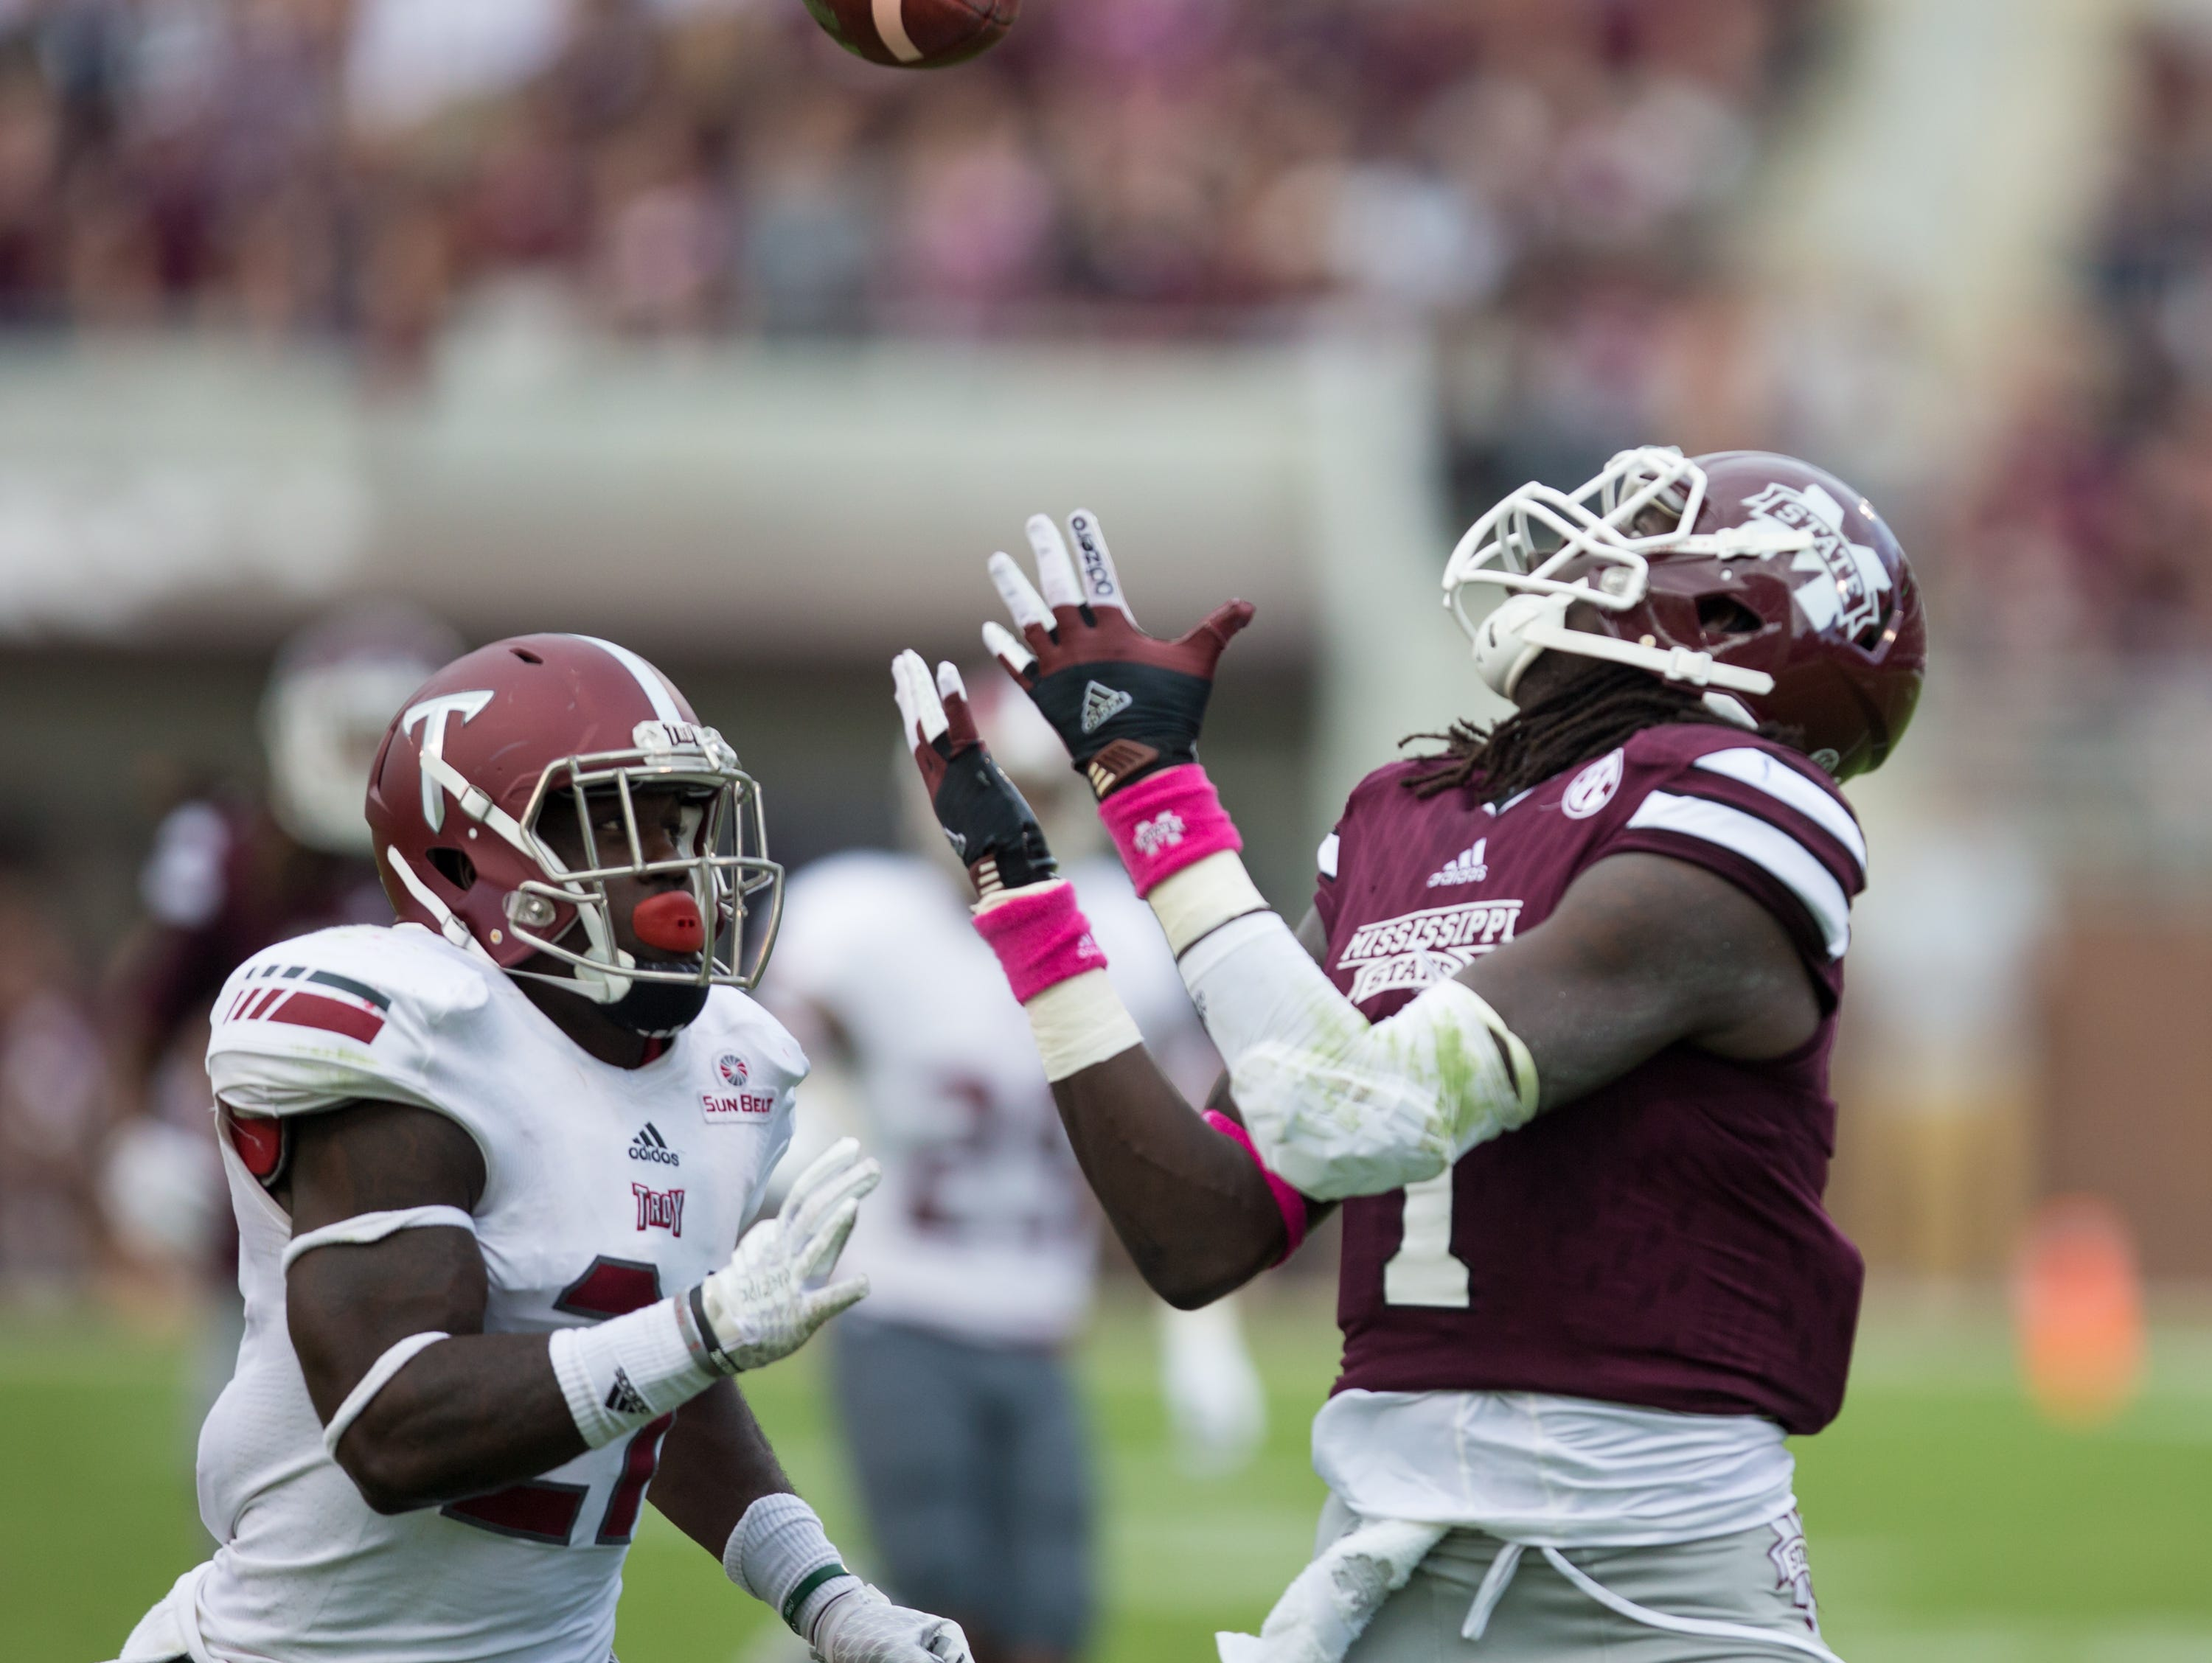 Mississippi State receiver De'Runnya Wilson (1) makes a catch near the goal line. Mississippi State played Troy in a college football game on Saturday, October 10, 2015 at Davis Wade Stadium in Starkville. Photo by Keith Warren (Mandatory Photo Credit)